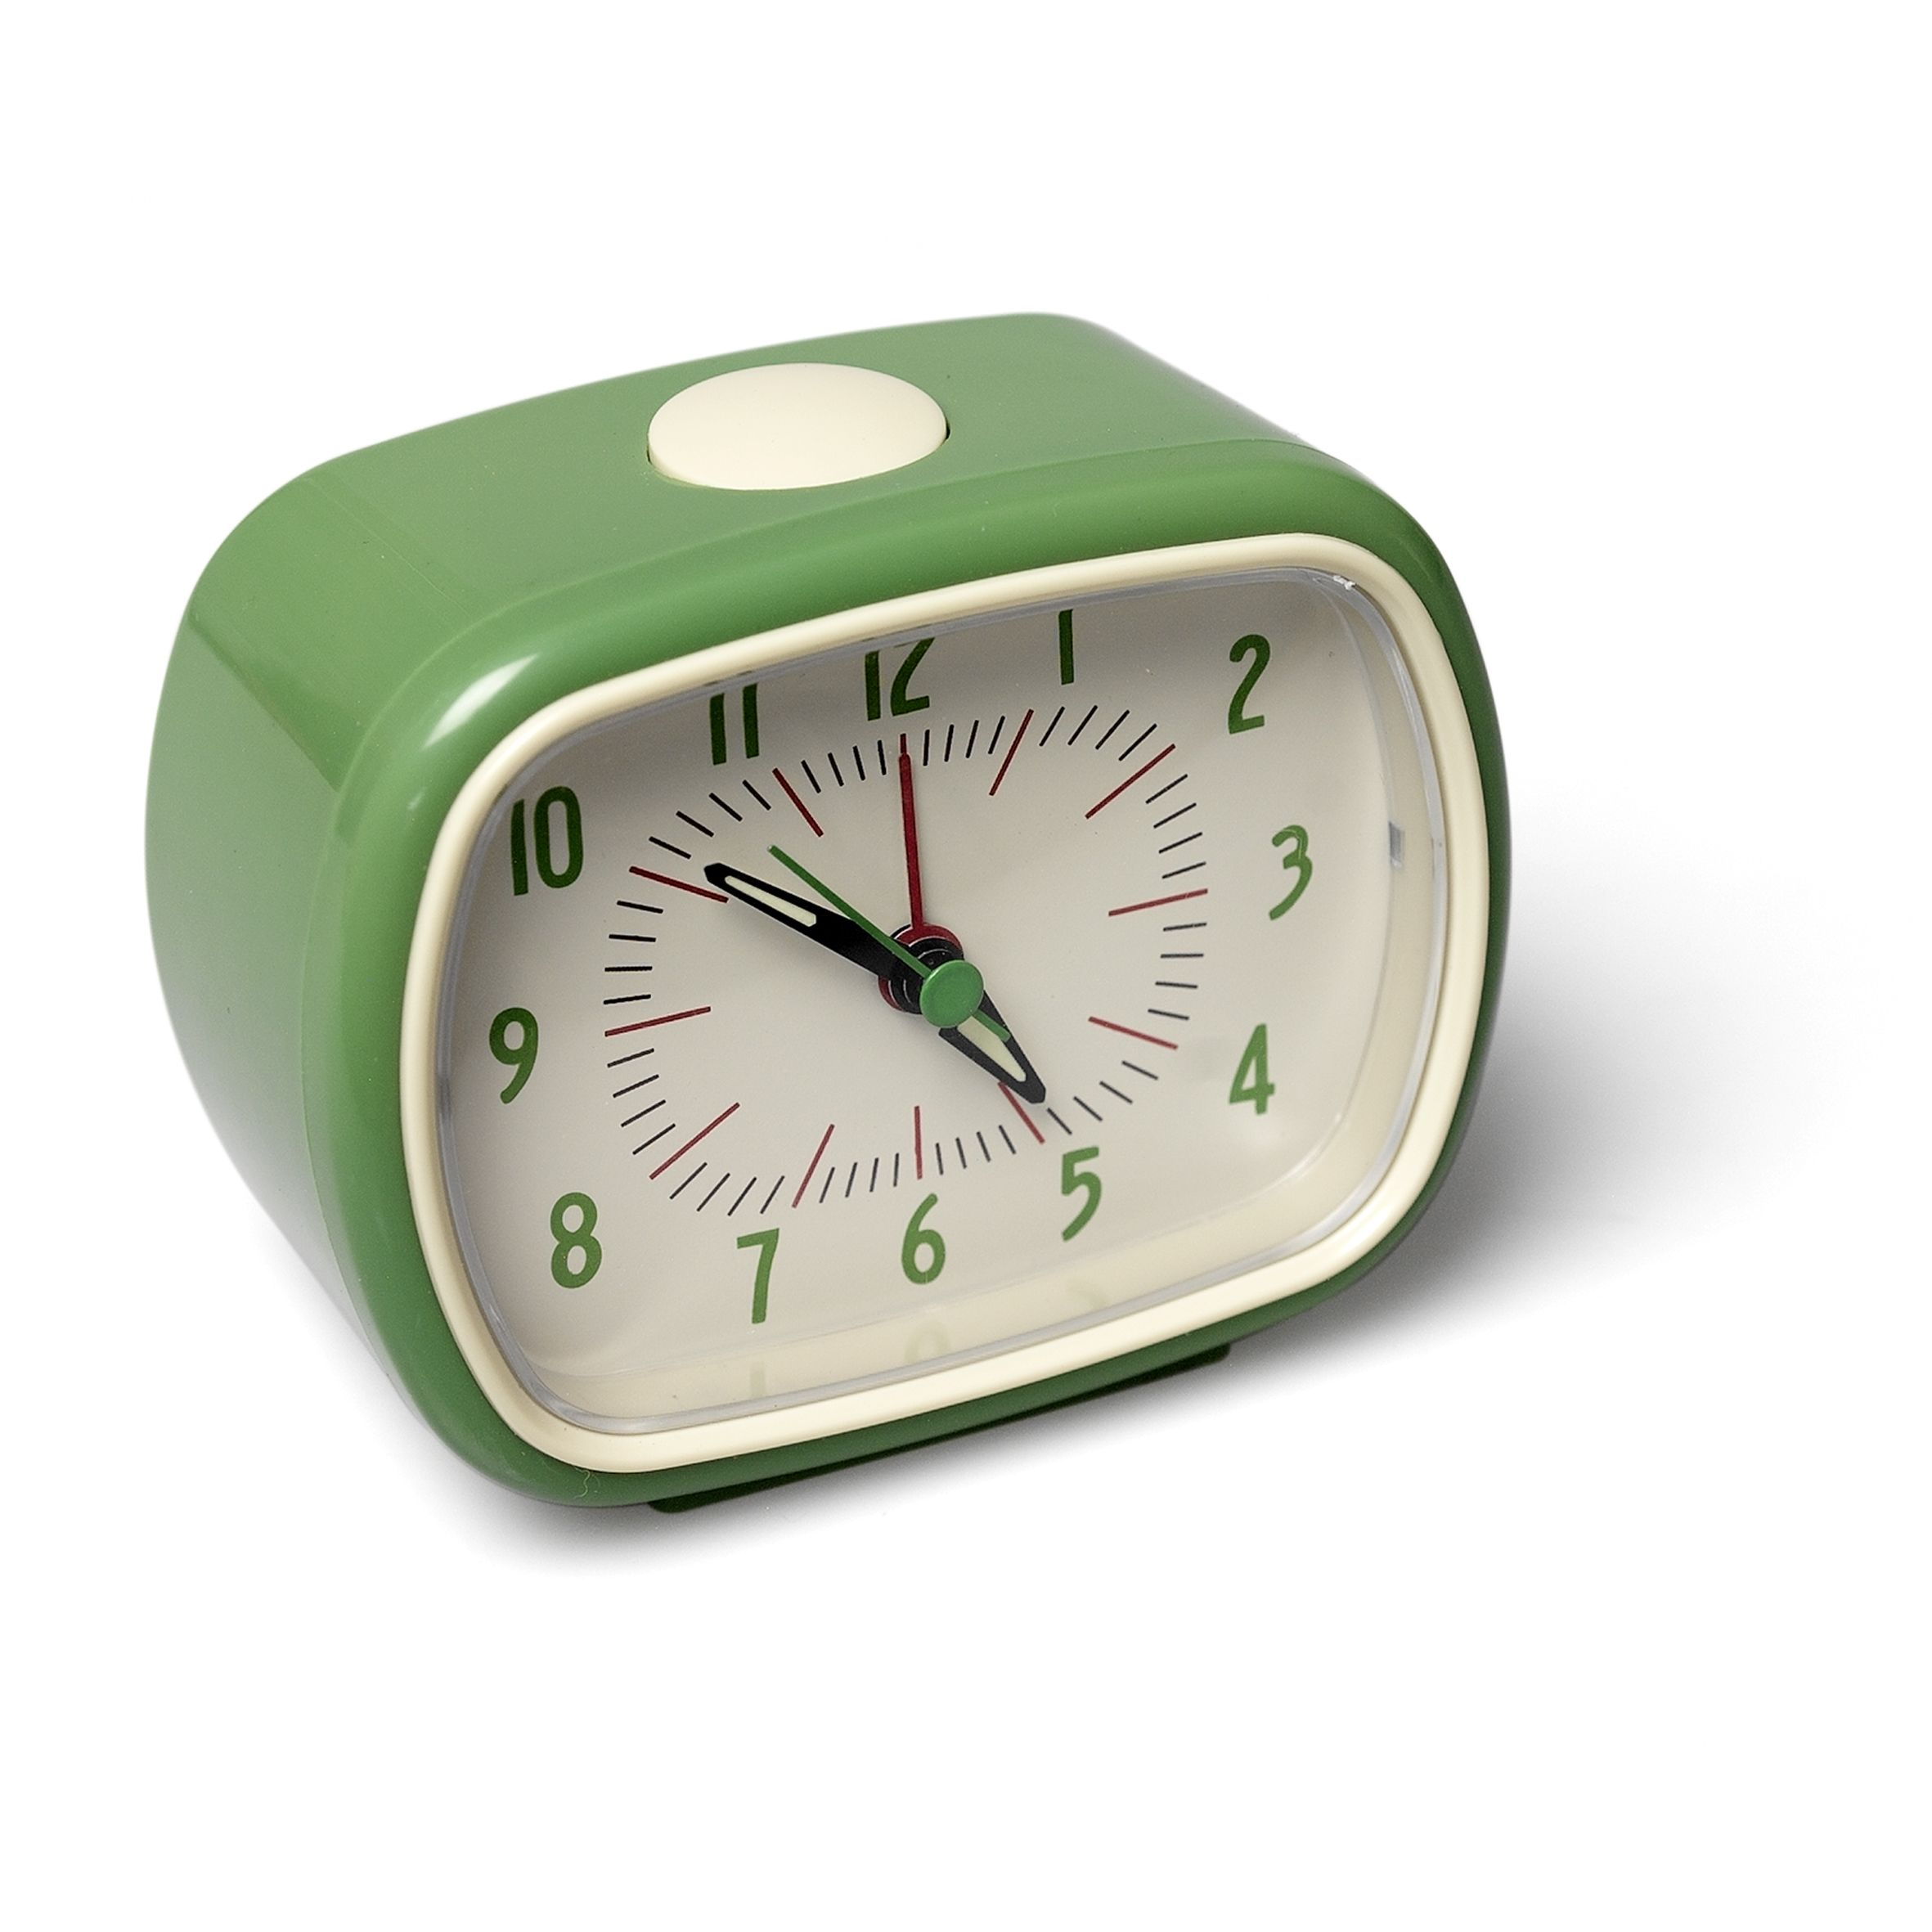 Green Retro Alarm Clock Retro Alarm Clock Alarm Clock Retro Clock